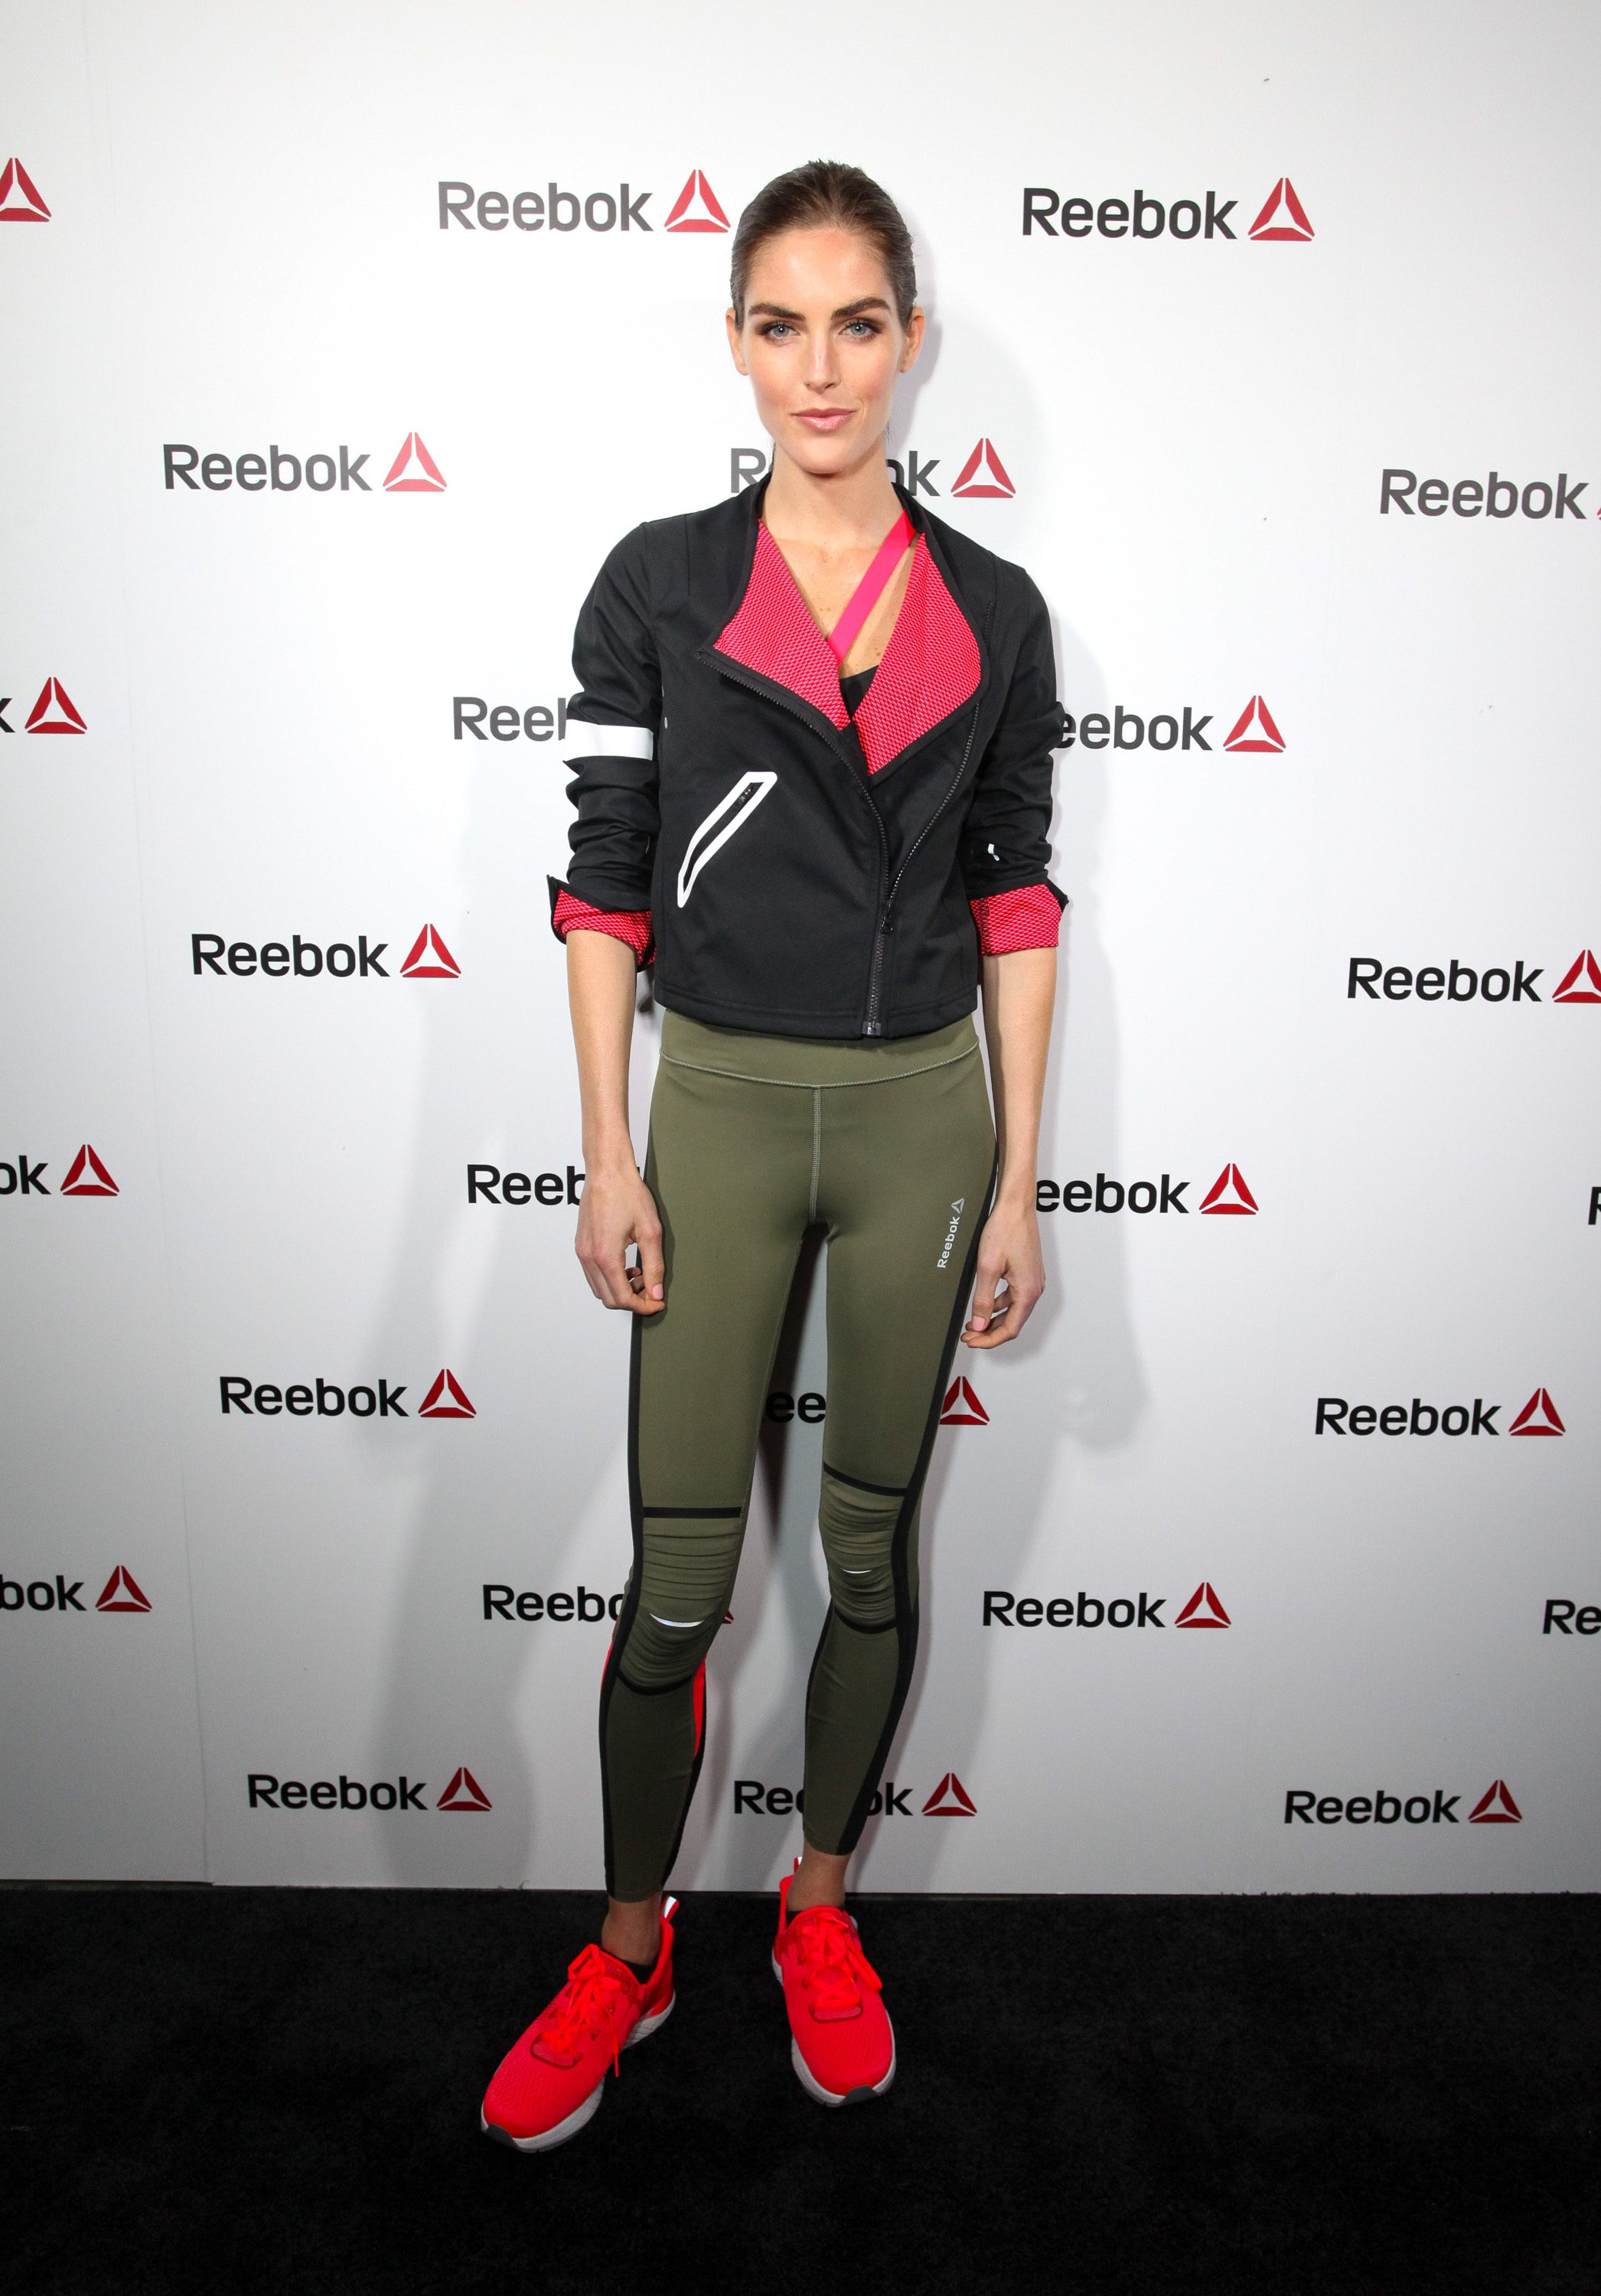 NEW YORK, NY - SEPTEMBER 16: Hilary Rhoda attends The Reebok #girlswithgrit Showcase at Marquee on September 16, 2015 in New York City. (Photo by Donald Bowers/Getty Images for Reebok)